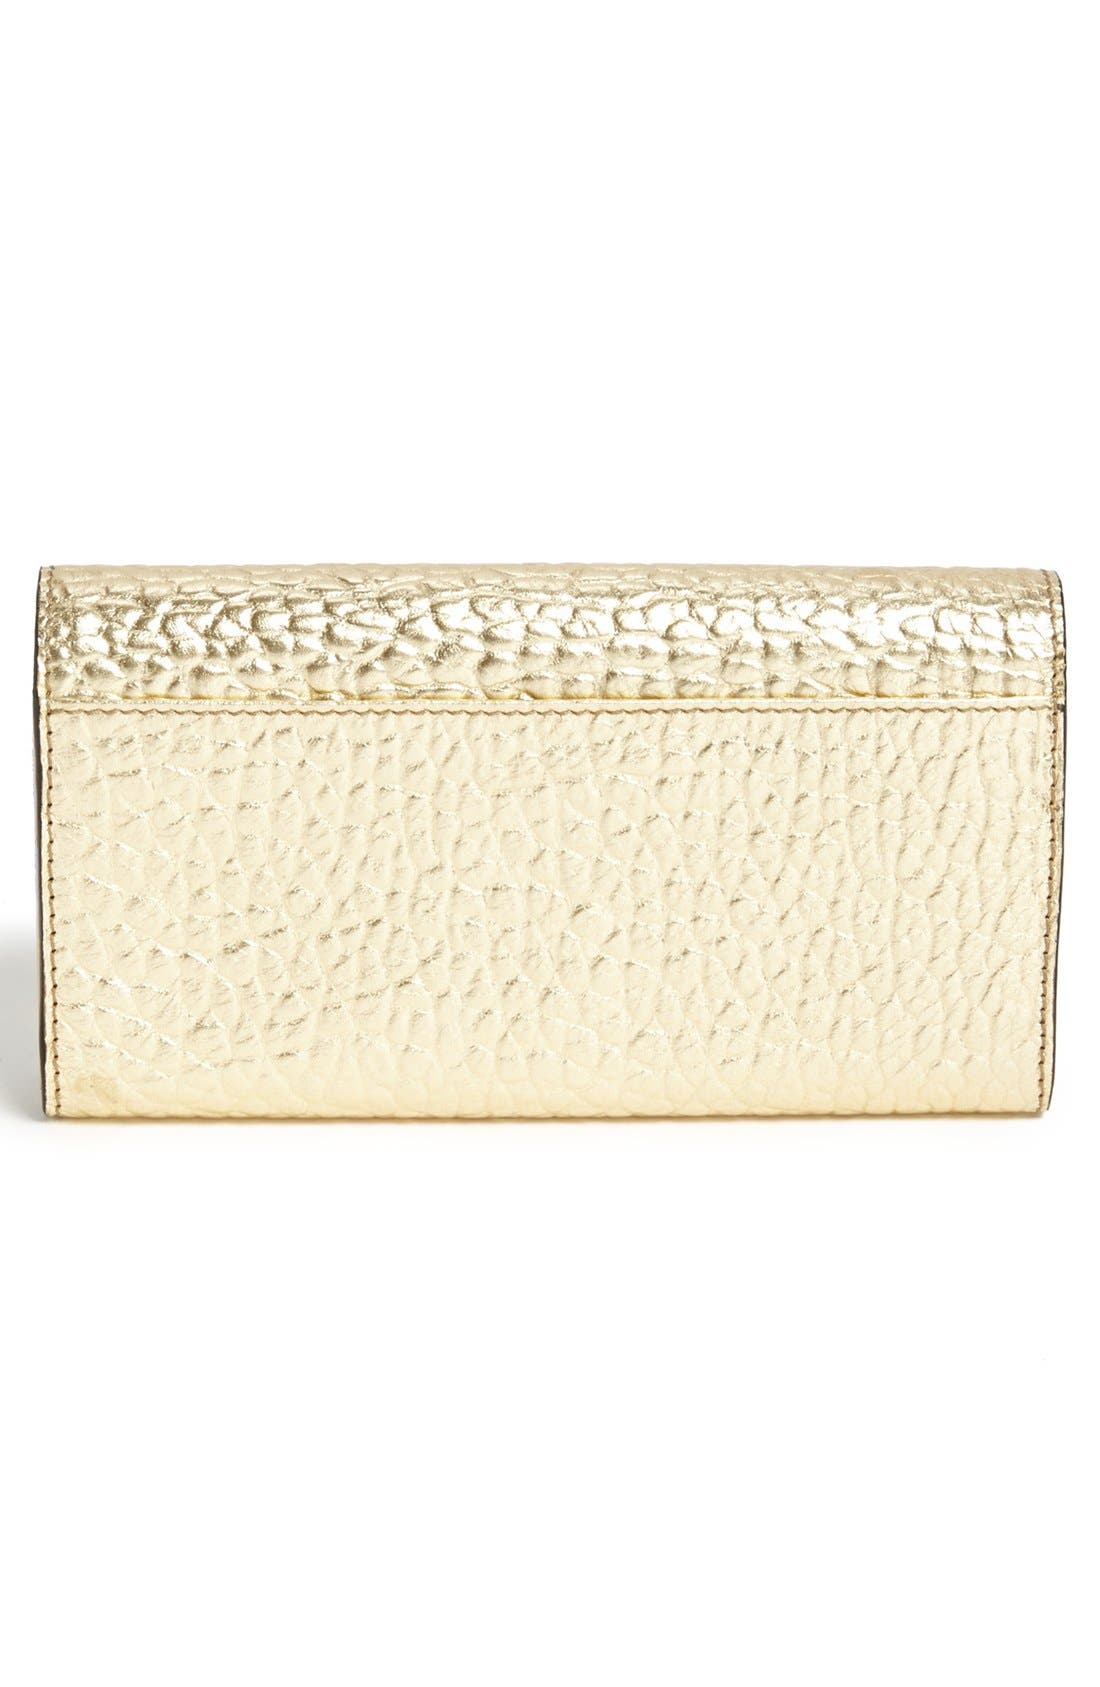 Alternate Image 3  - Burberry 'Penrose' Bow Leather Wallet